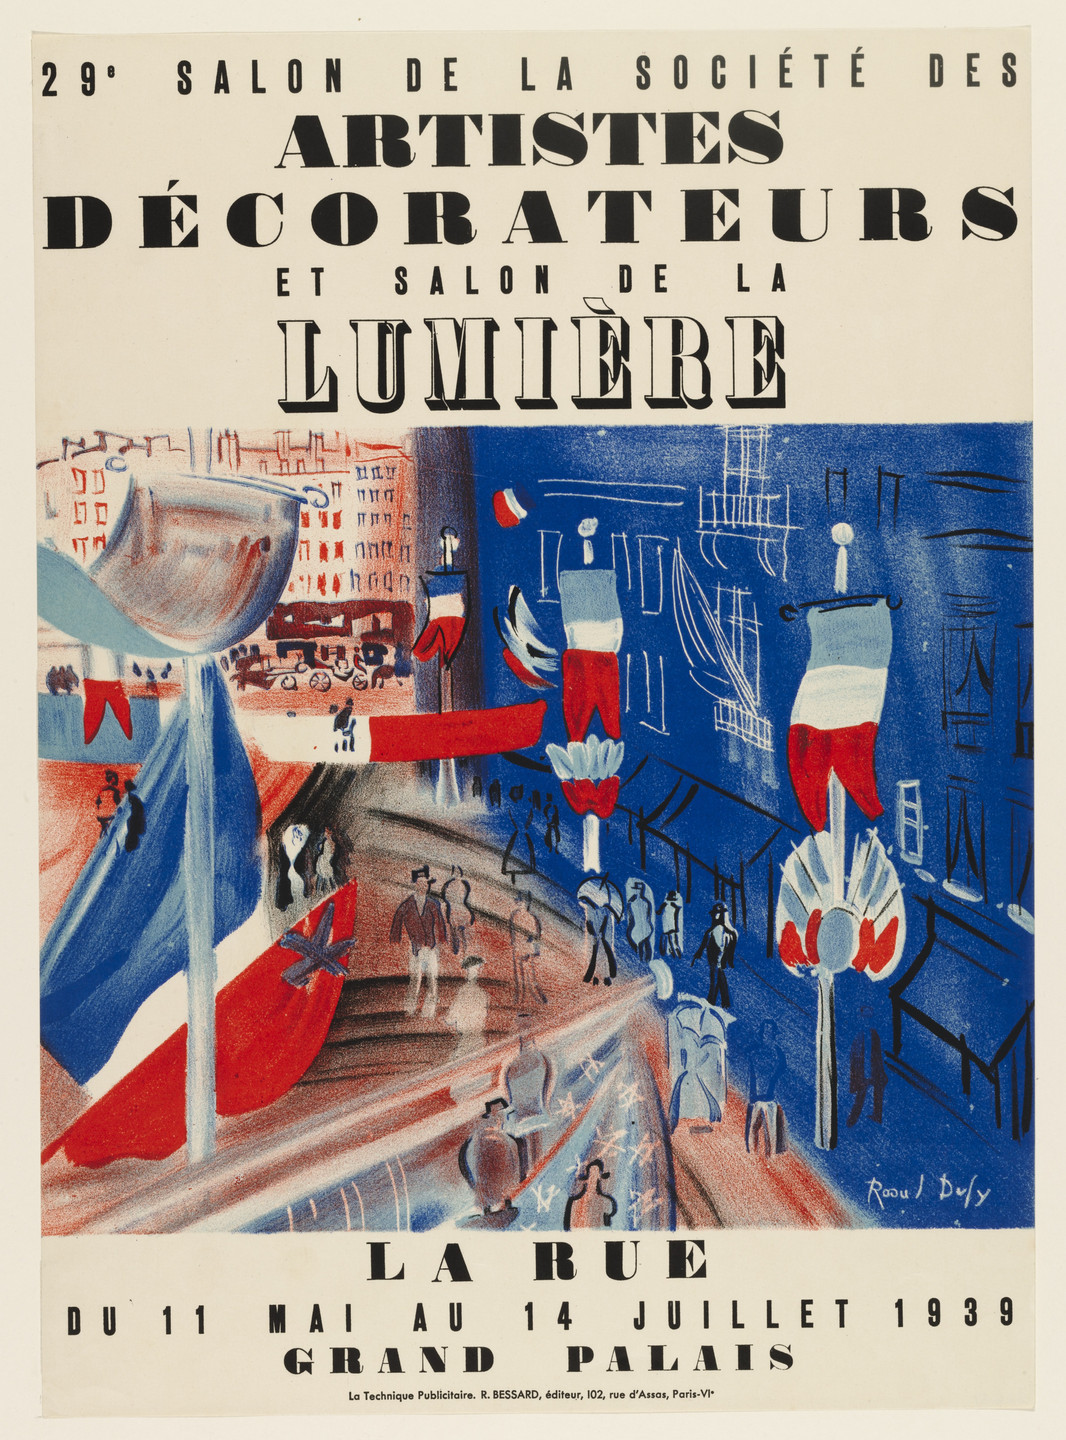 Raoul Dufy. Exhibition of the Society of Artist Decorators. (1939)